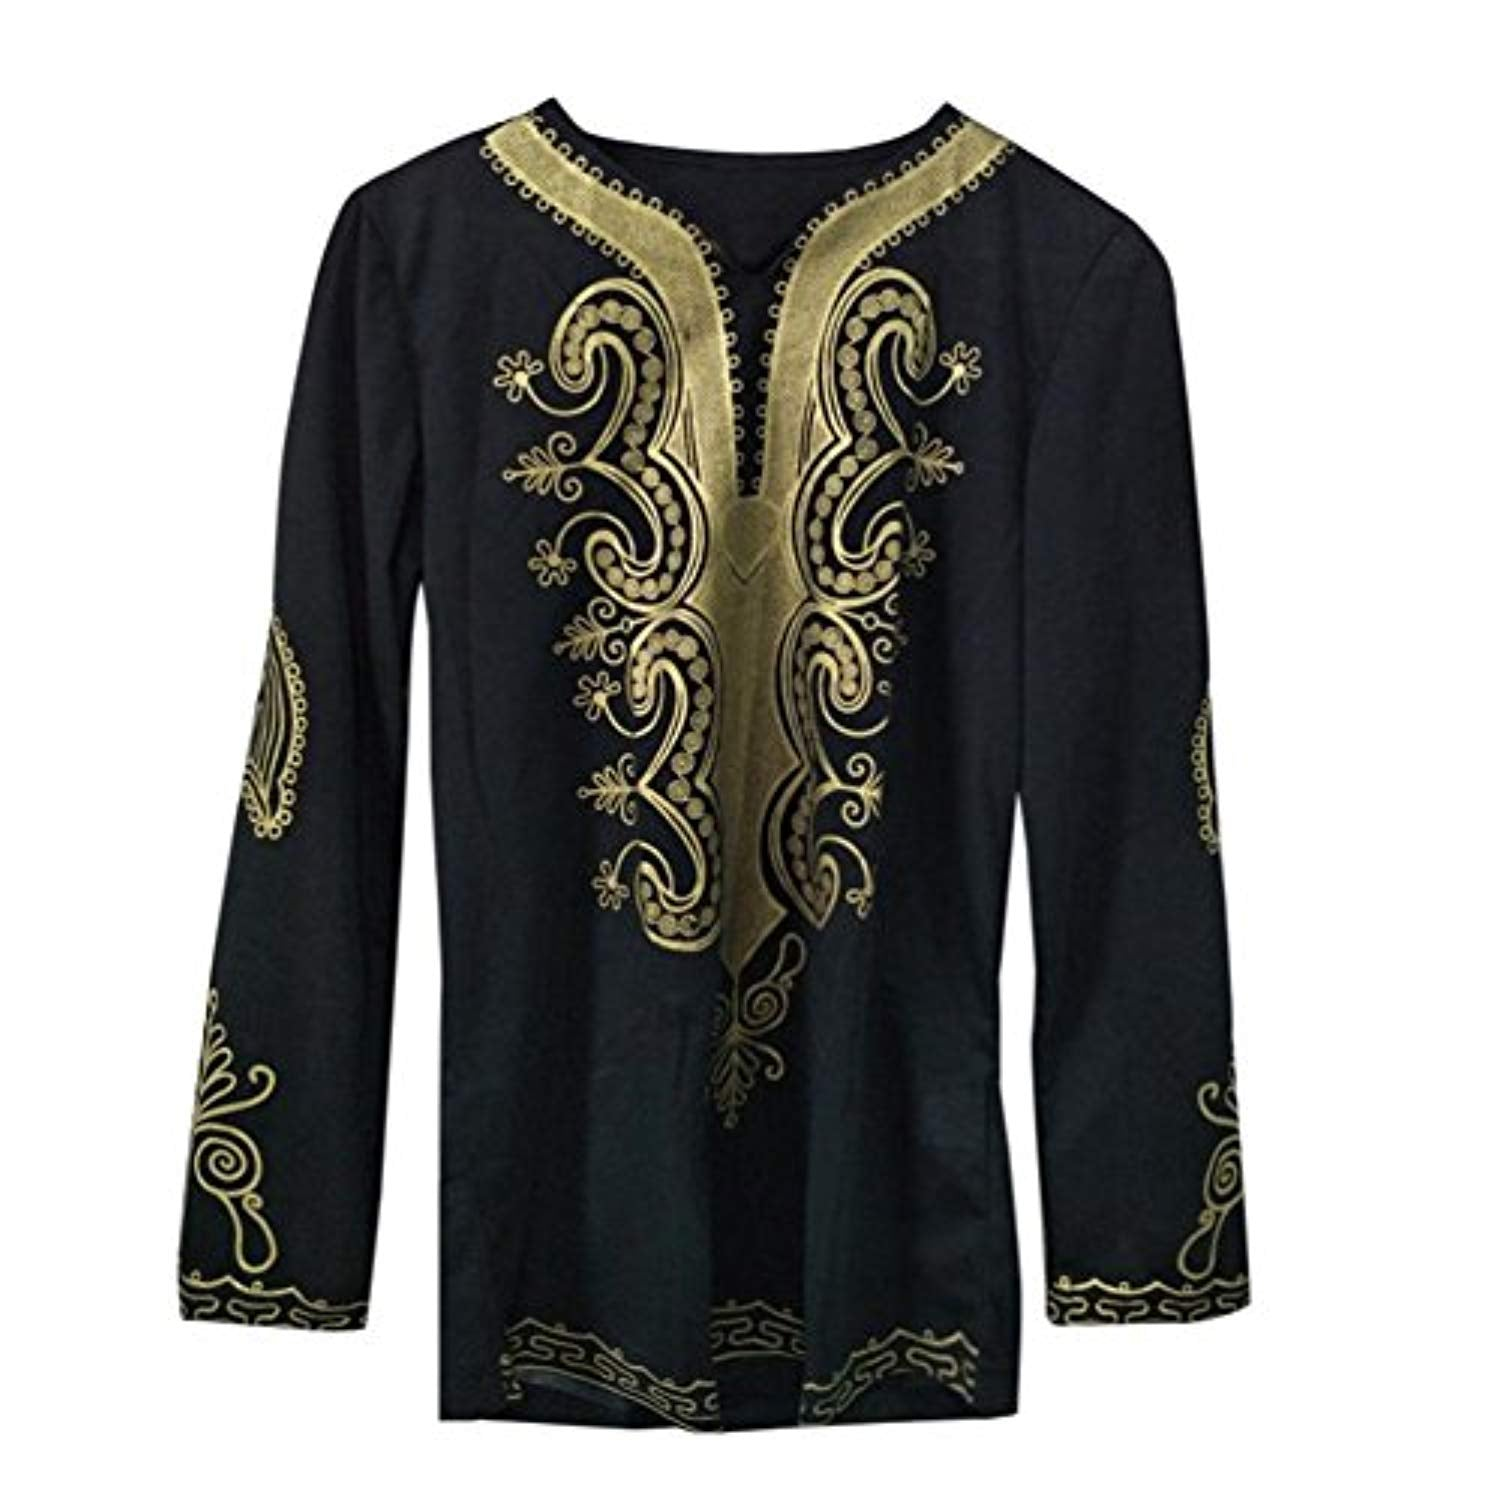 G&Kshop Mens Shirt, Long Sleeve African Print Comfort Soft Casual T-Shirt Top Blouse - Ufumbuzi - Home